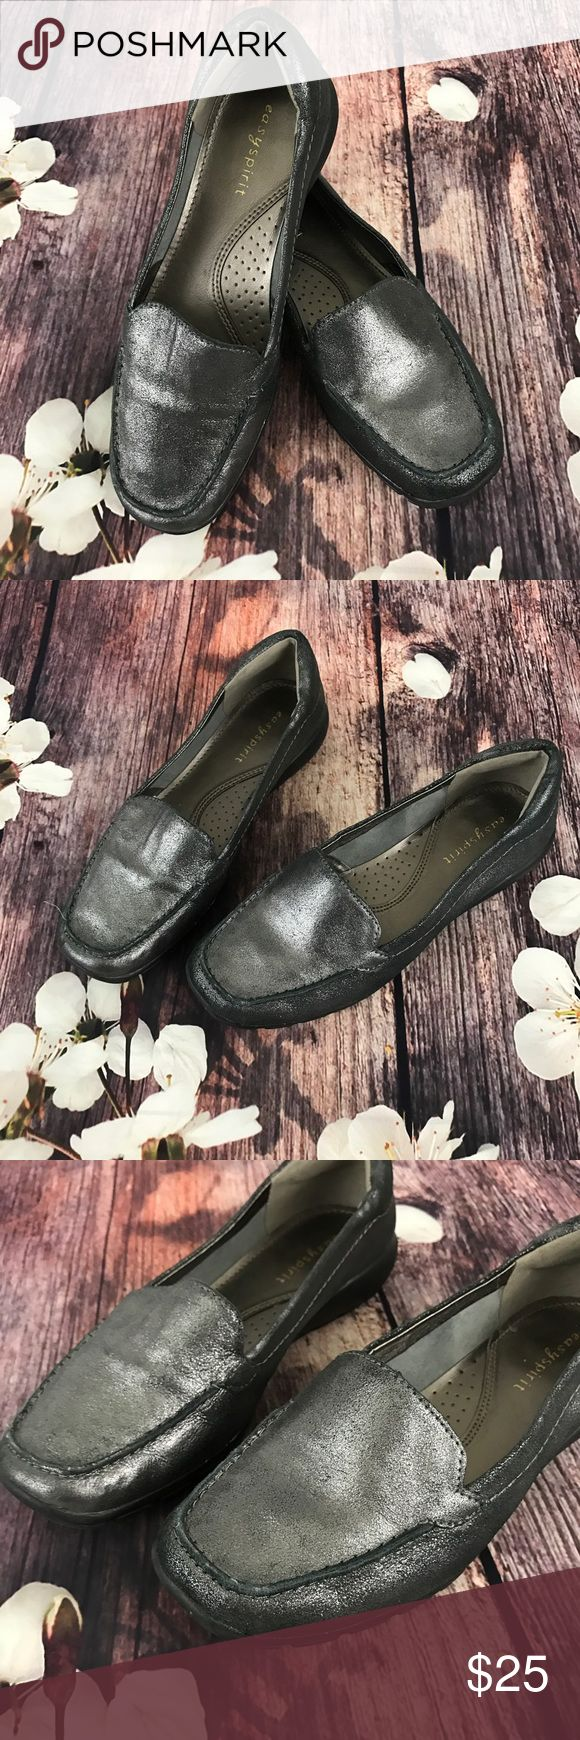 Easy Spirit Leather Shoes These shoes are perfect with slacks and very comfortable.  In like new condition. Easy Spirit Shoes Flats & Loafers